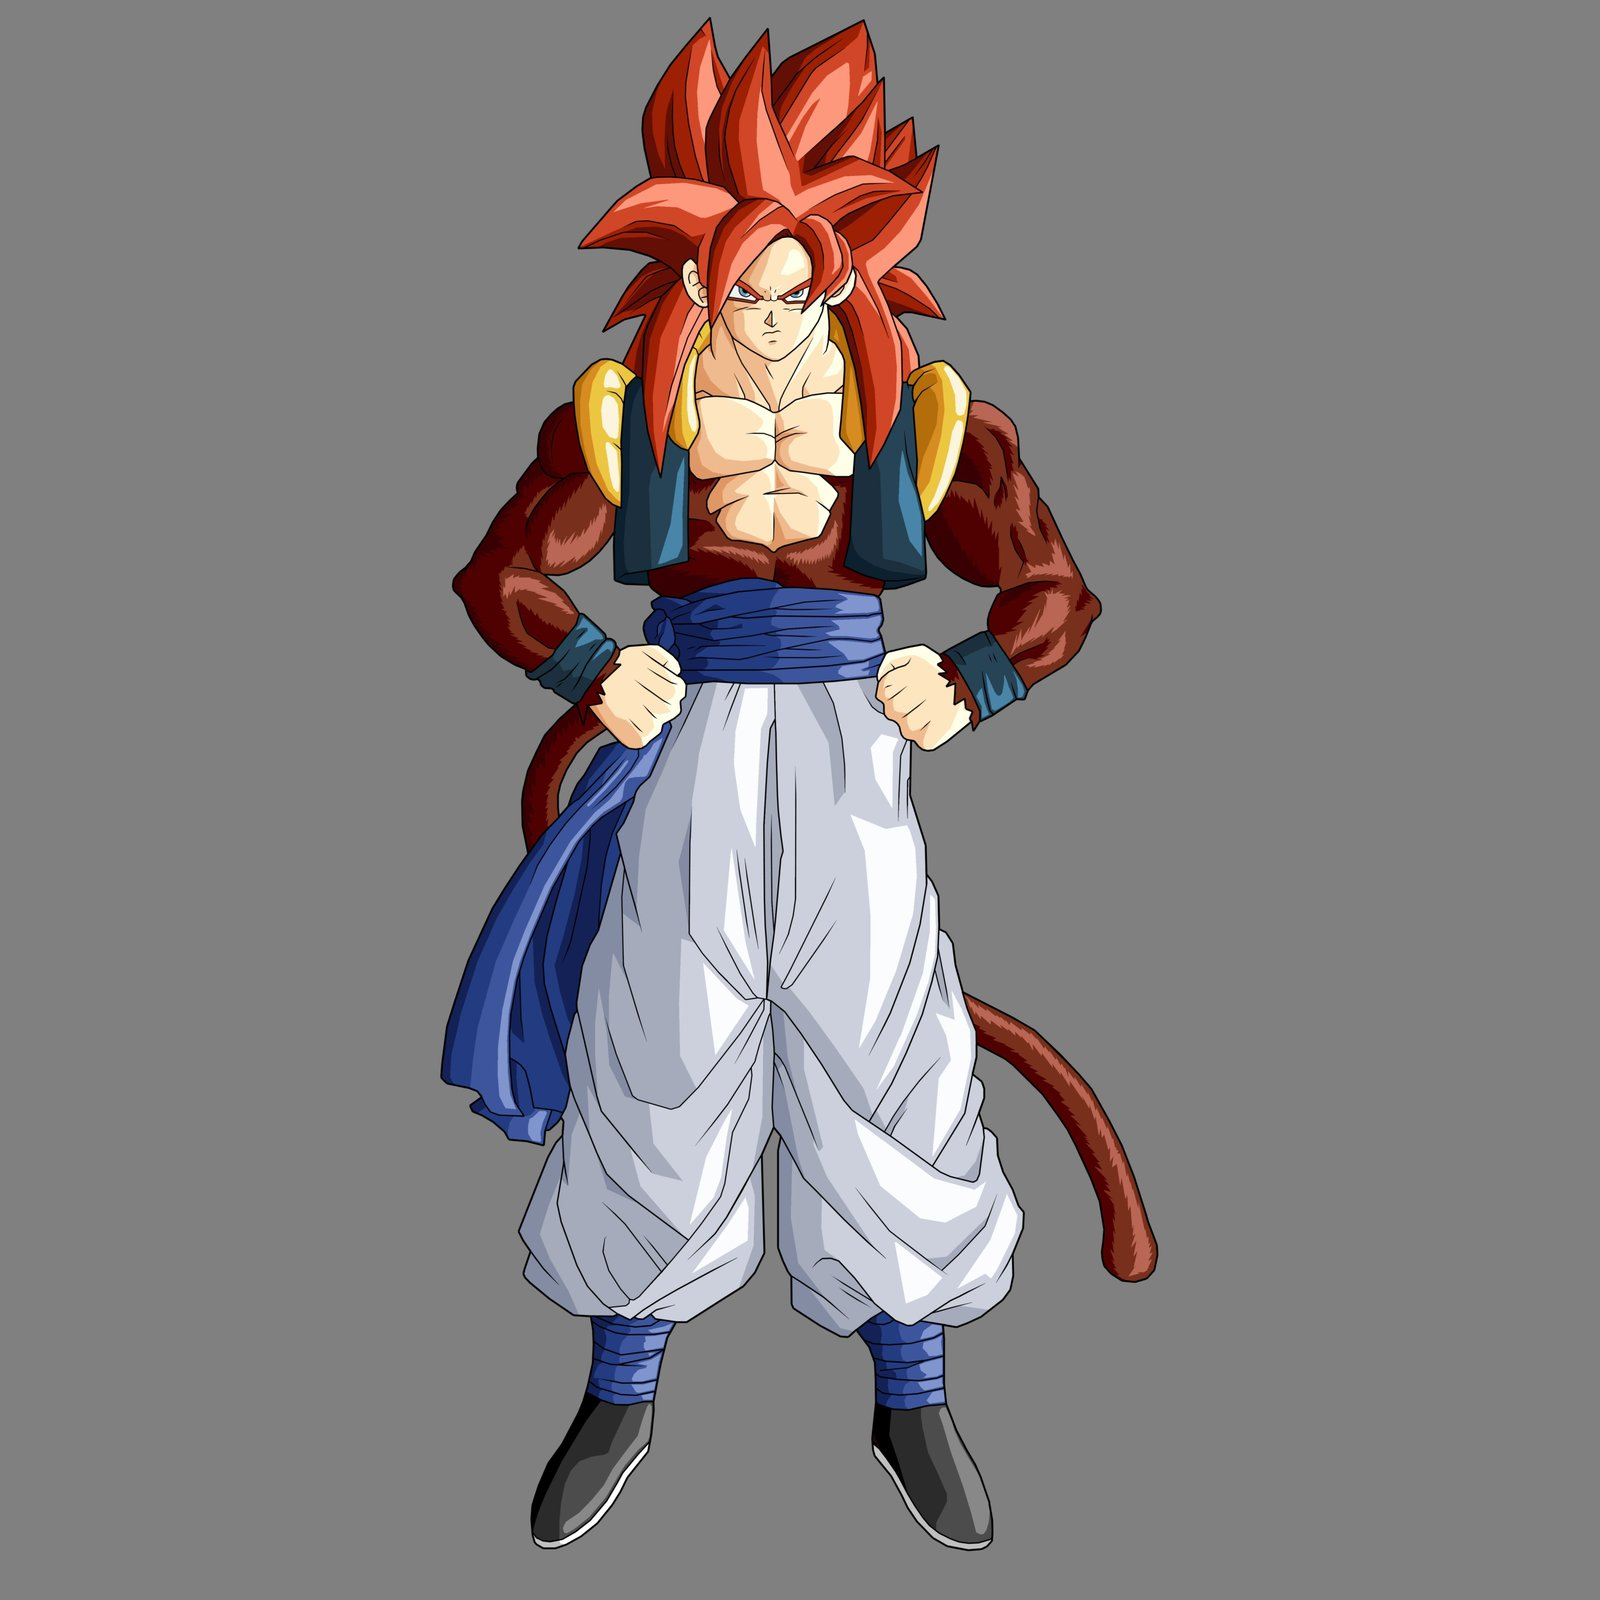 Dragon Ball Super Christmas Wallpaper: Gogeta Wallpapers